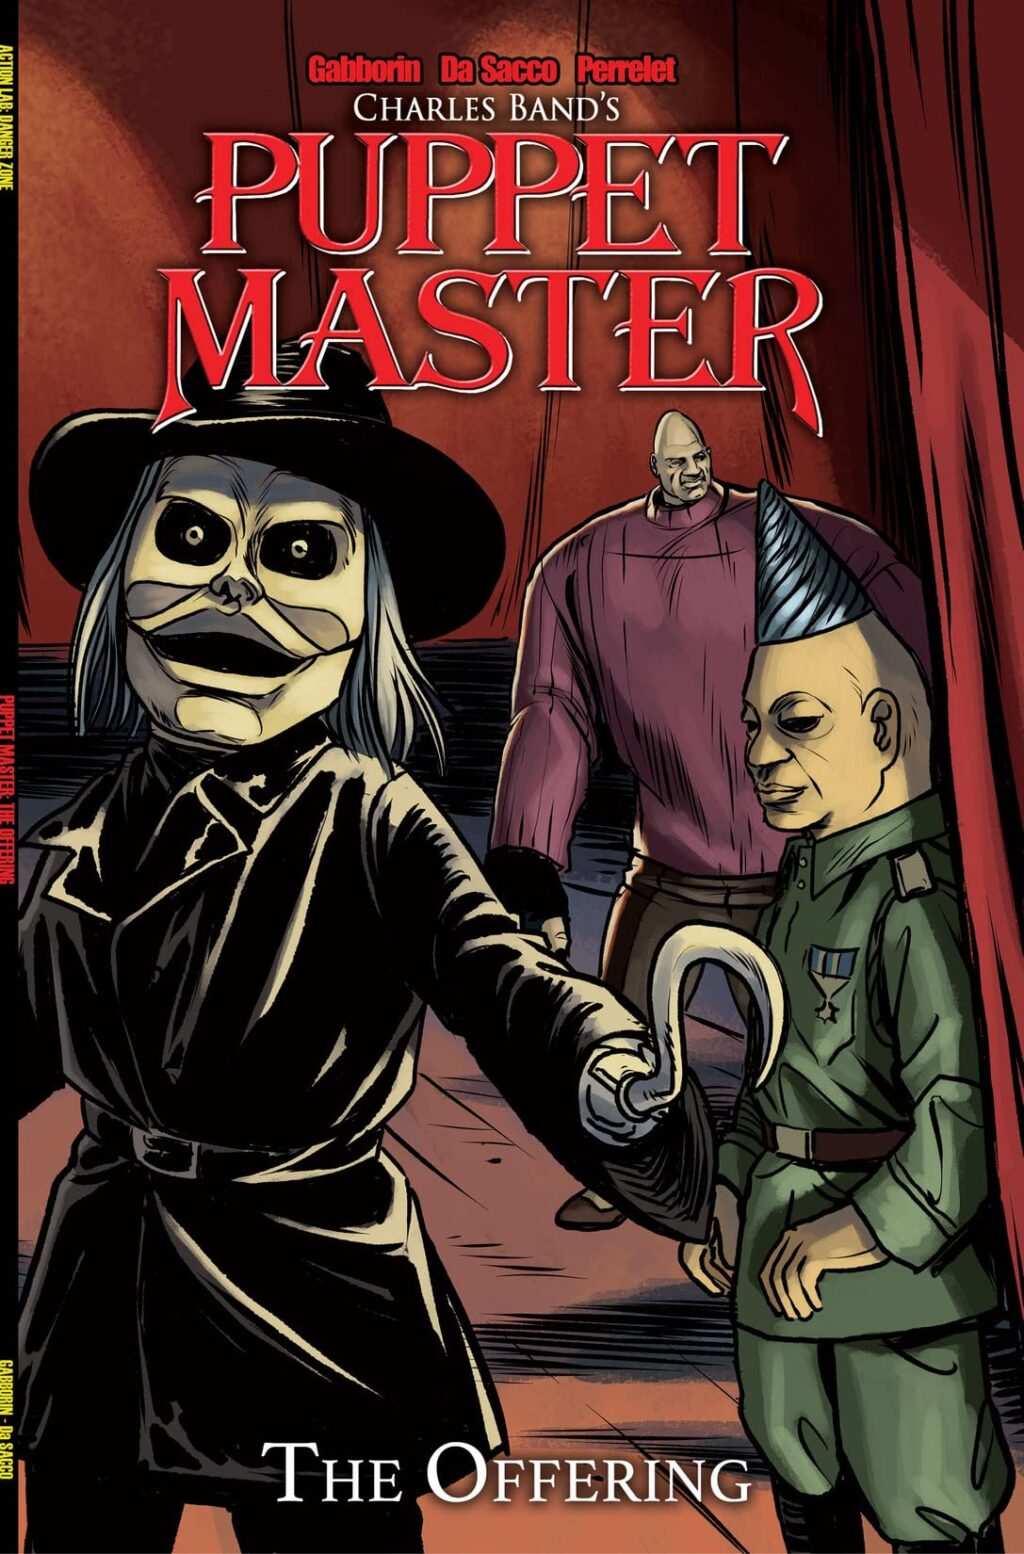 Puppet Master 1024x1554 - The Other Cursed Pages: 4 More Comics for Horror Fans